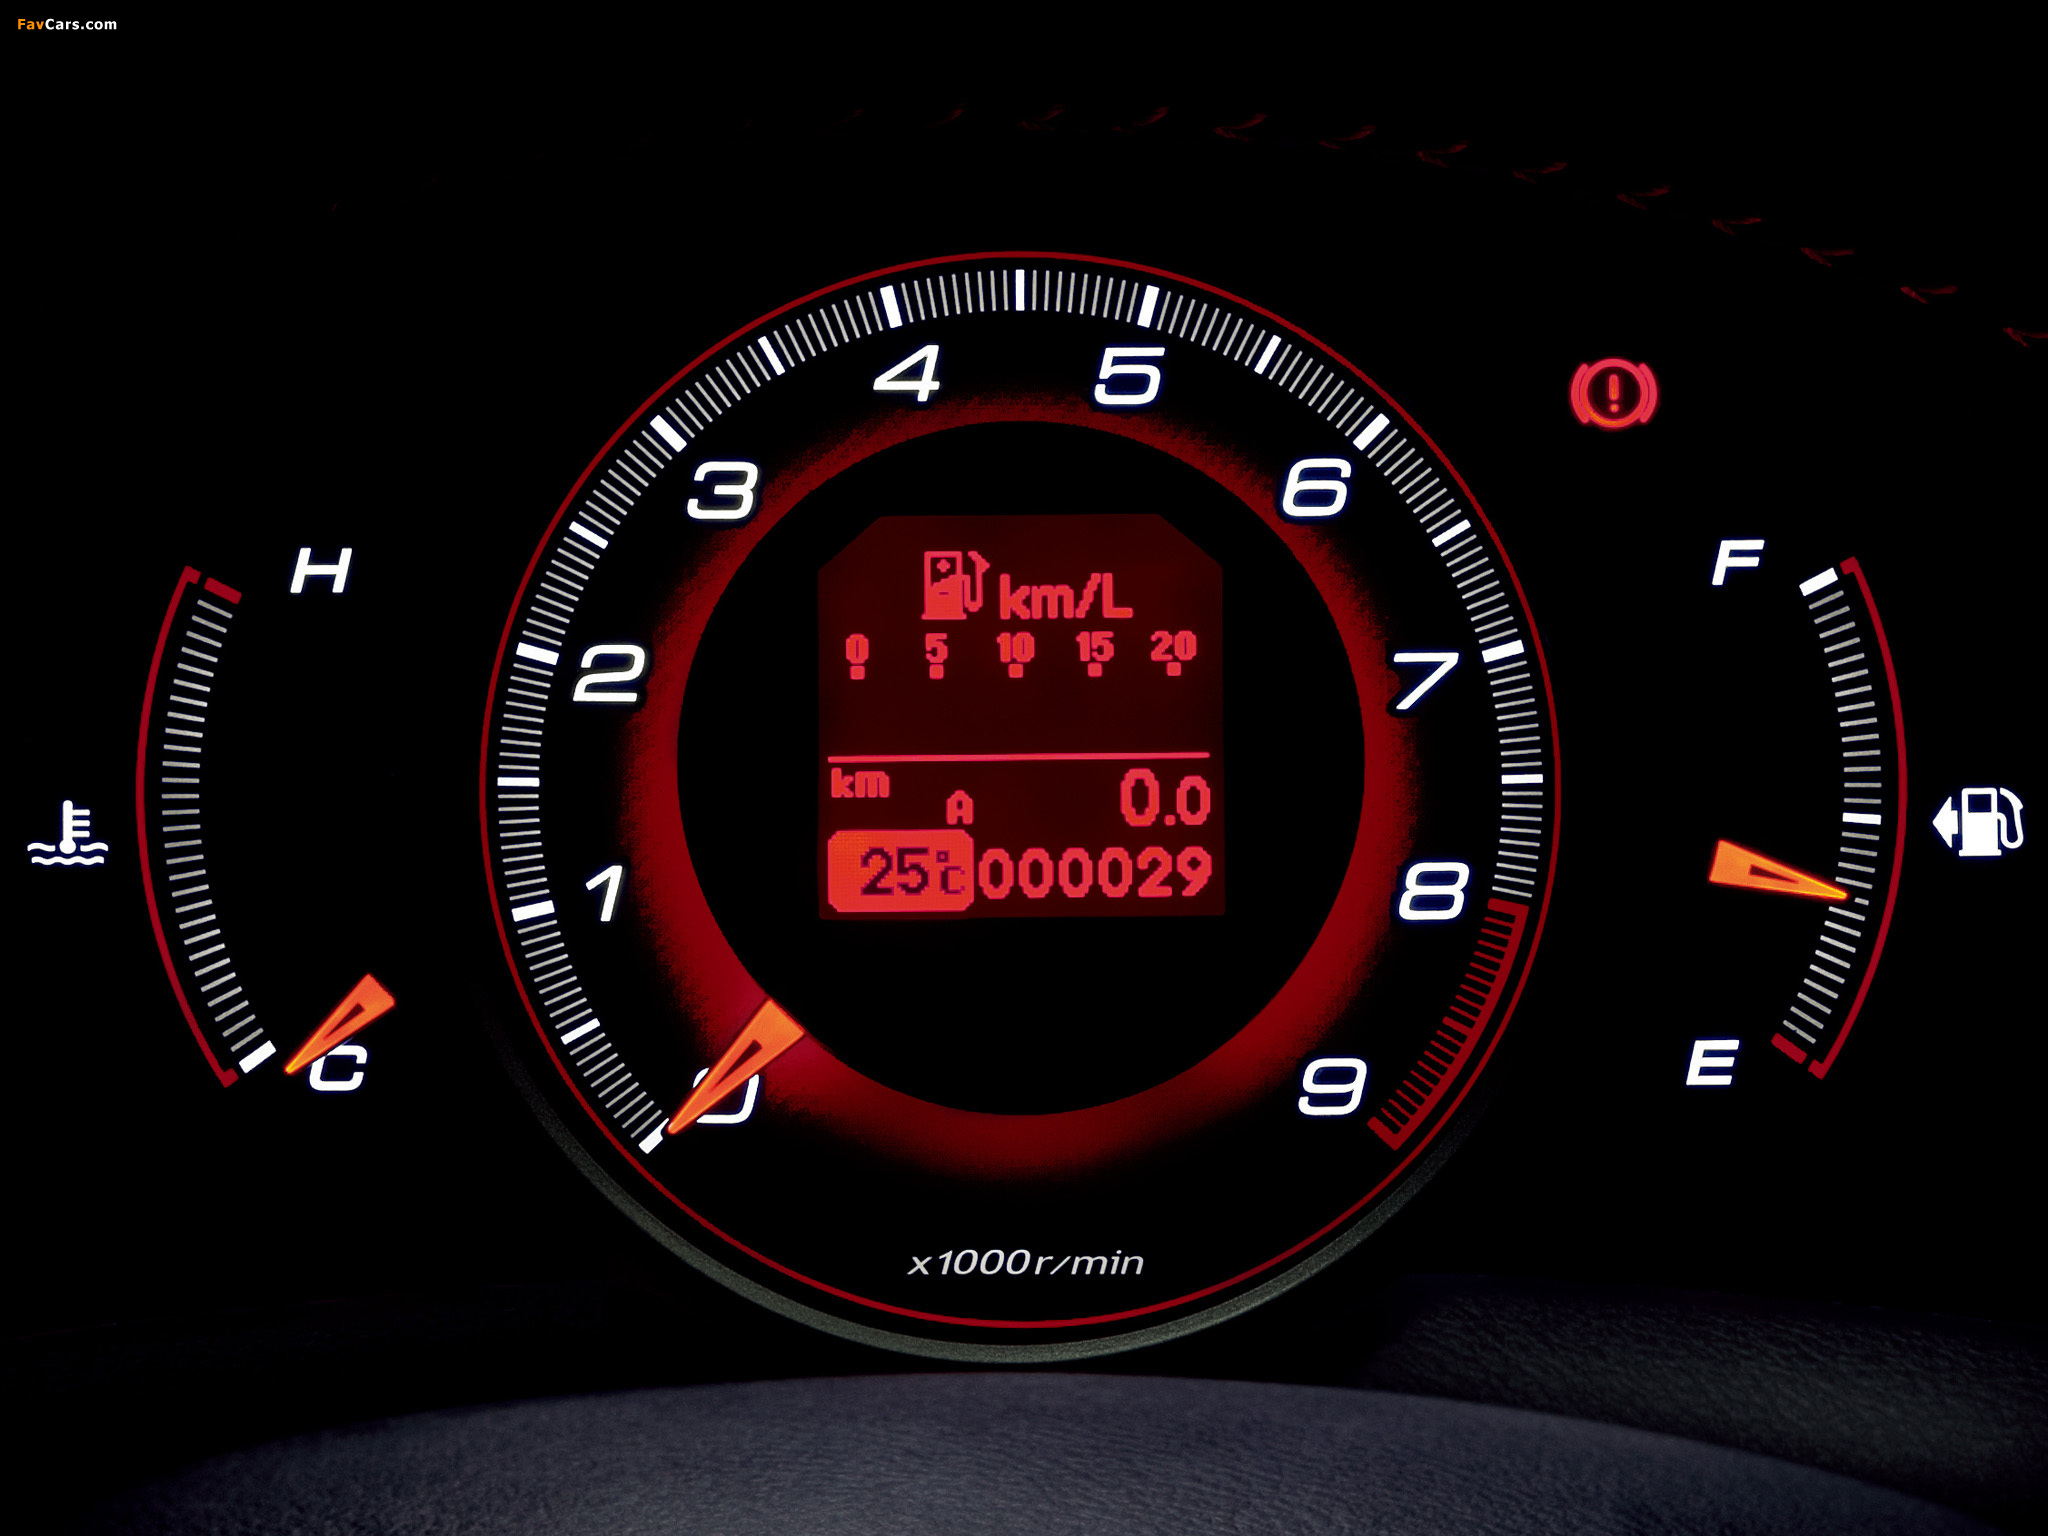 Honda Phone Wallpapers Honda Civic Type R Euro Fn2 2009 Wallpapers 2048x1536